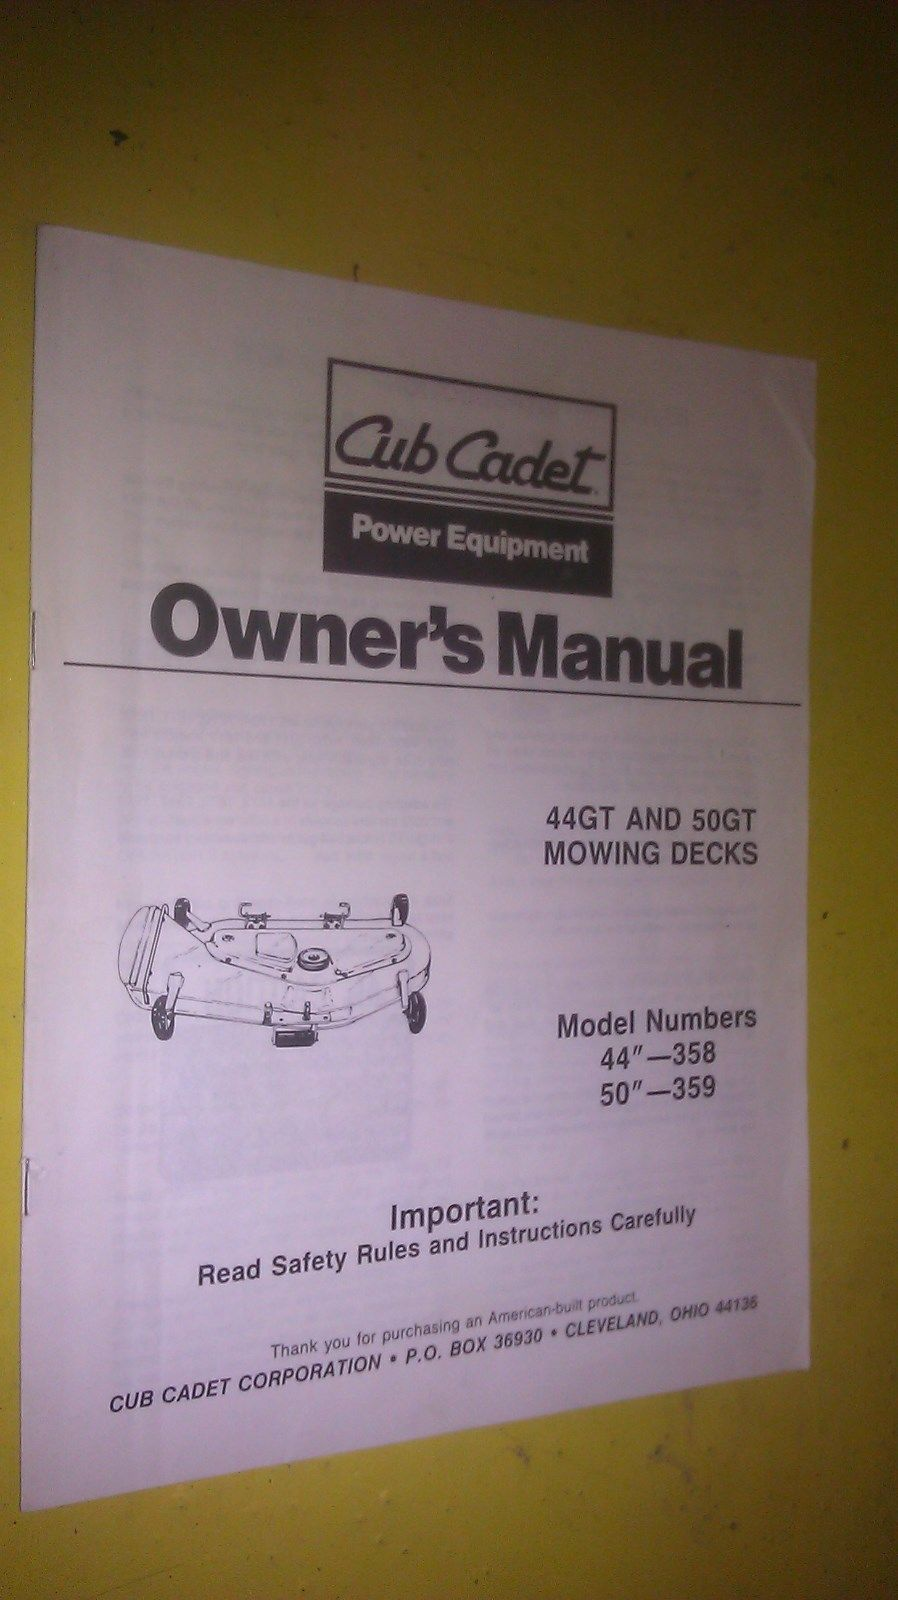 Genuine cub cadet 44gt and 50gt mowing decks models owner s manual